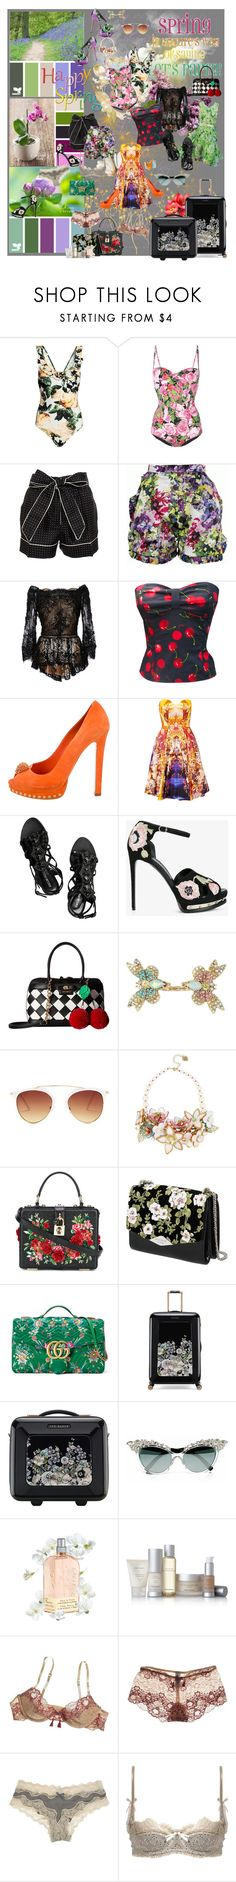 """""""Spring Break Style"""" by asuras ❤ liked on Polyvore featuring Dolce&Gabbana, Erdem, Marchesa, Alexander McQueen, McQ by Alexander McQueen, Emilio Pucci, Betsey Johnson, Rochas, Gucci and Ted Baker"""